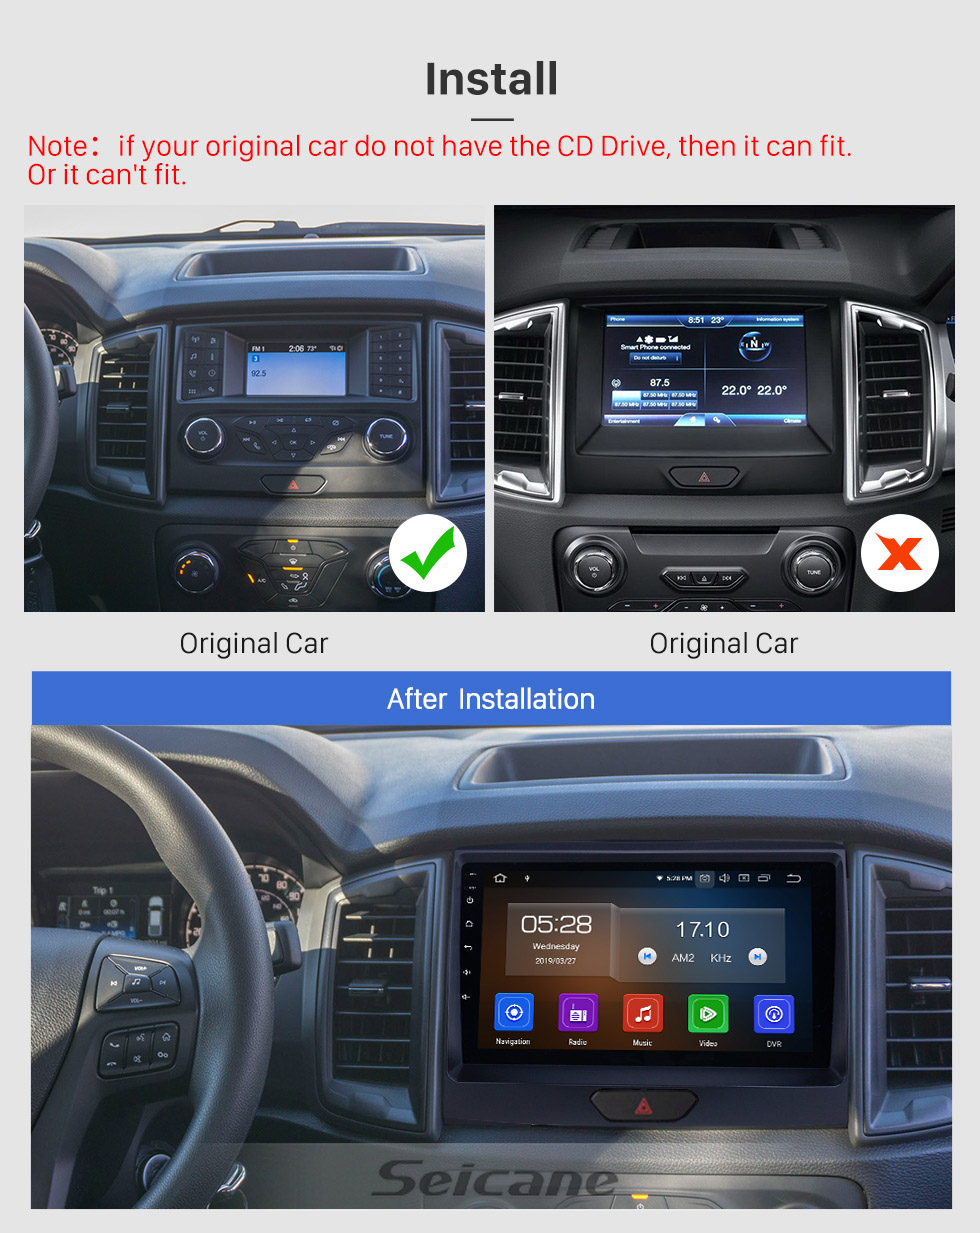 Seicane 2018 Ford Ranger Android 9.0 9 inch GPS Navigation Radio Bluetooth HD Touchscreen WIFI USB Carplay support DAB+ SWC